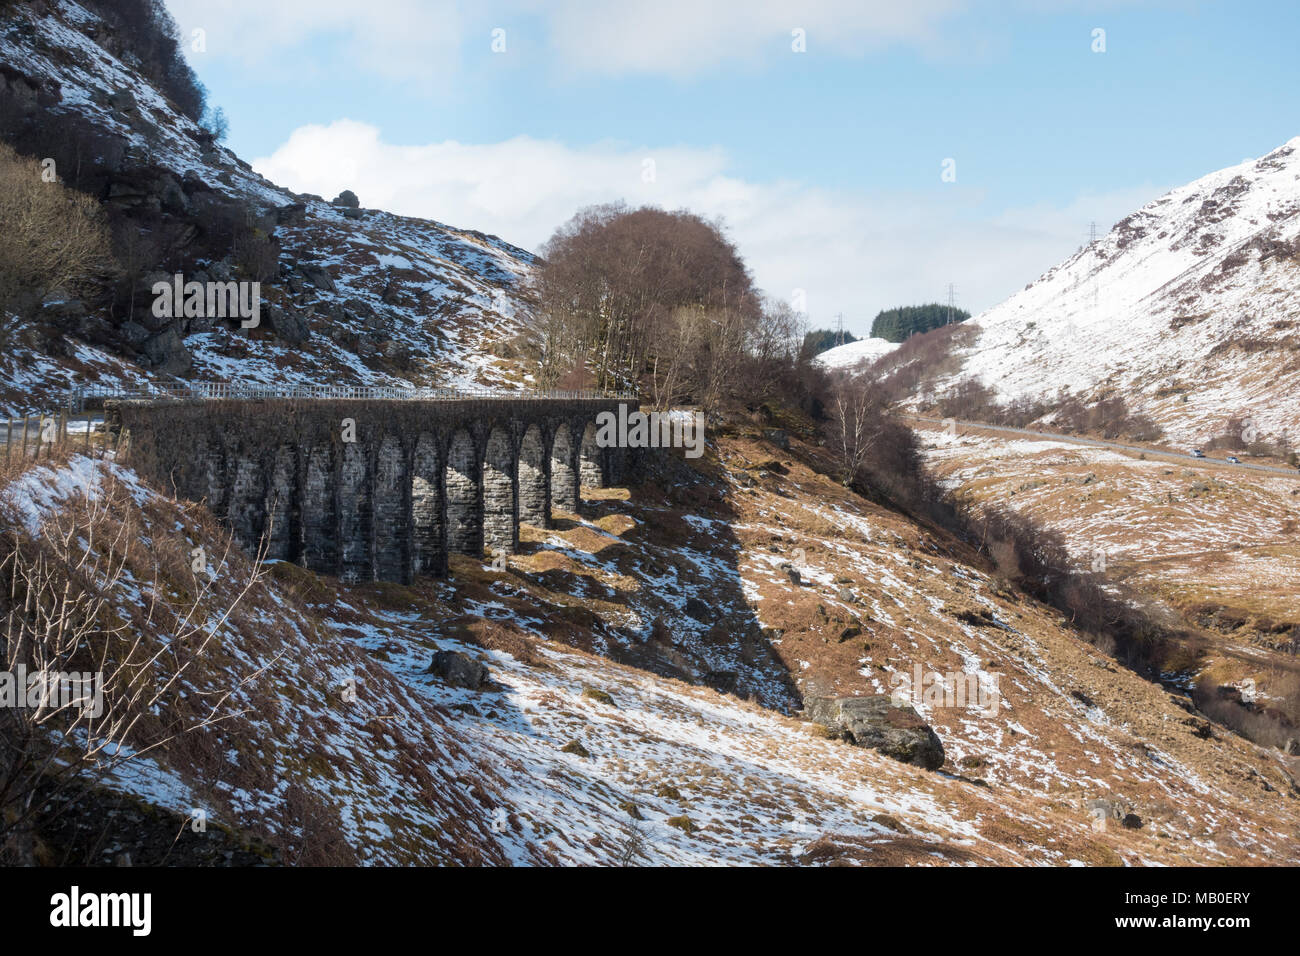 Glen Ogle Viaduct on the Rob Roy Way and National Cycle route 7, Lochearnhead, Scotland, UK - Stock Image